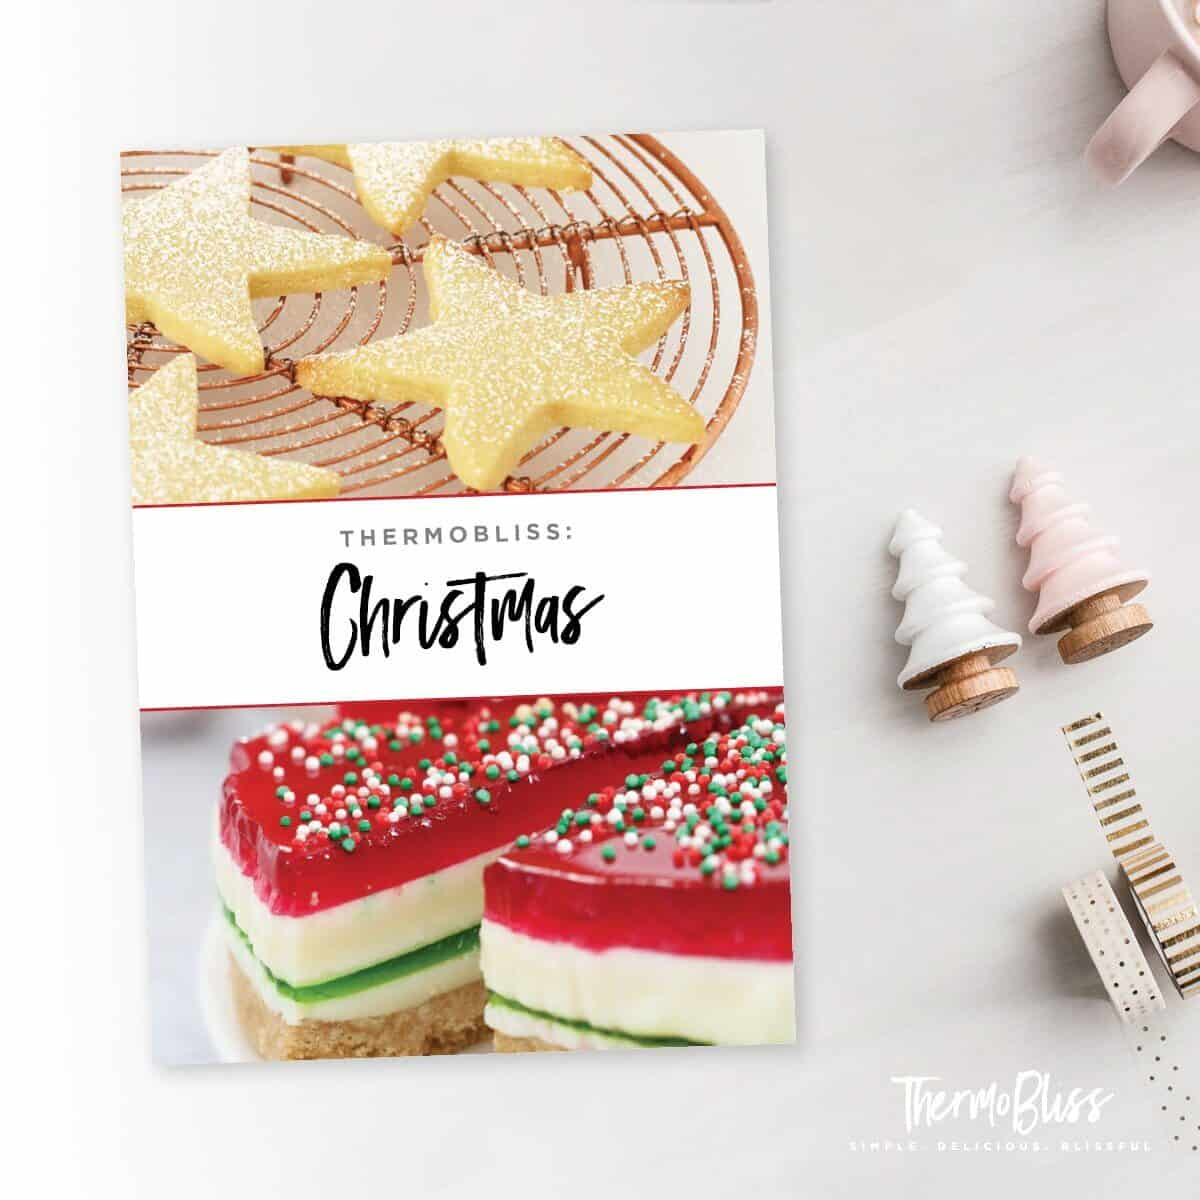 The ultimate collection of Thermomix Christmas Recipes can be found in our Thermomix Christmas Cookbook! RRP $16.95 (includes a hadcopy printed cookbook plus a free eBook version).